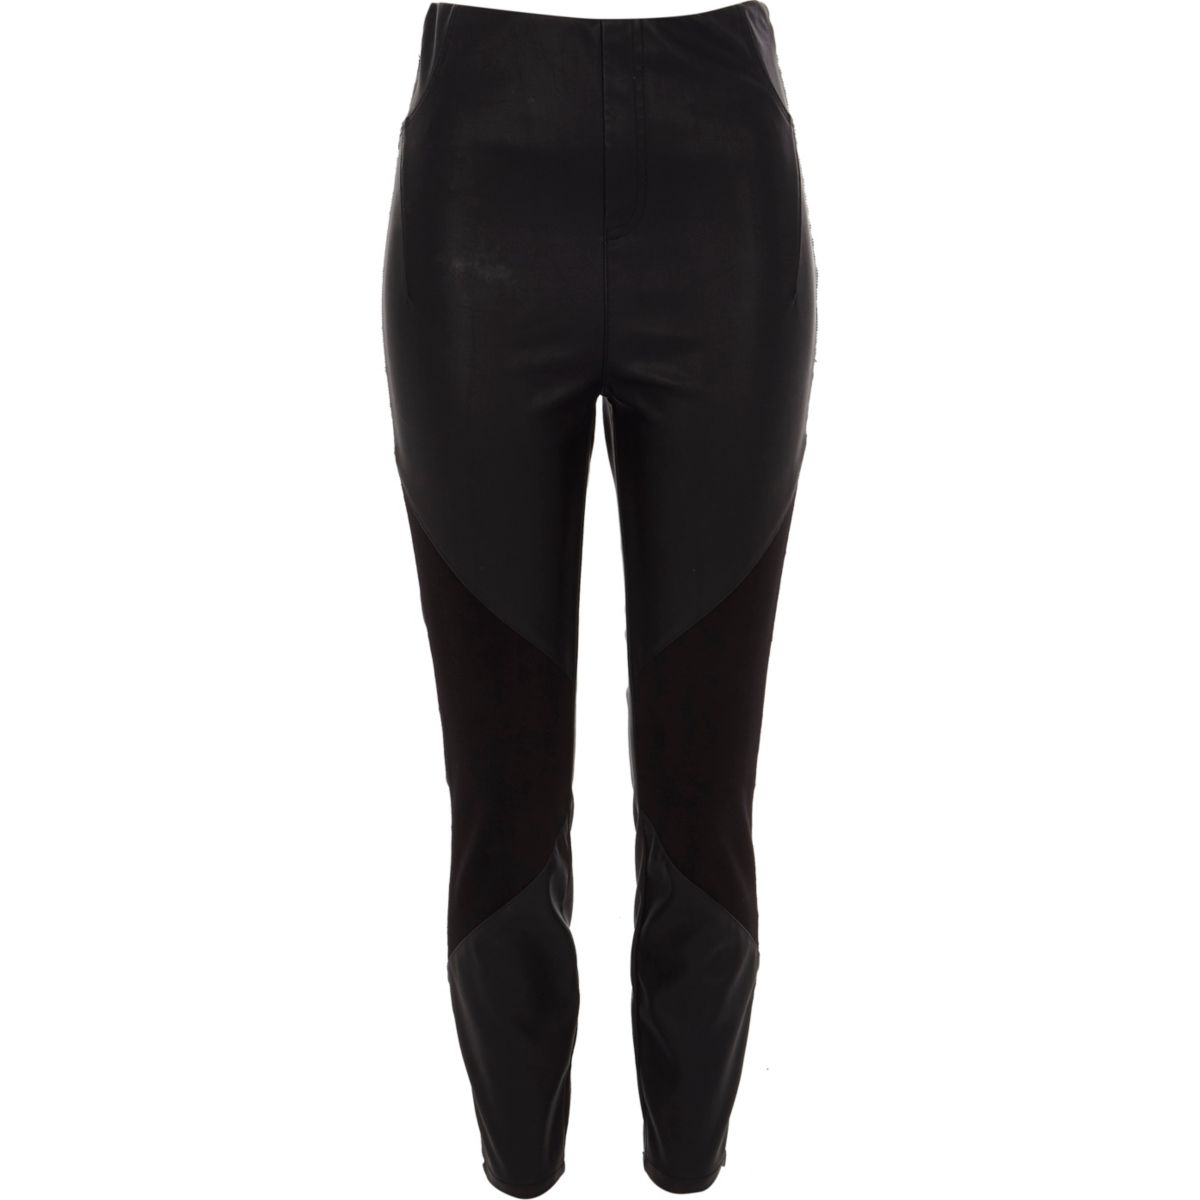 Black faux leather and ponte leggings